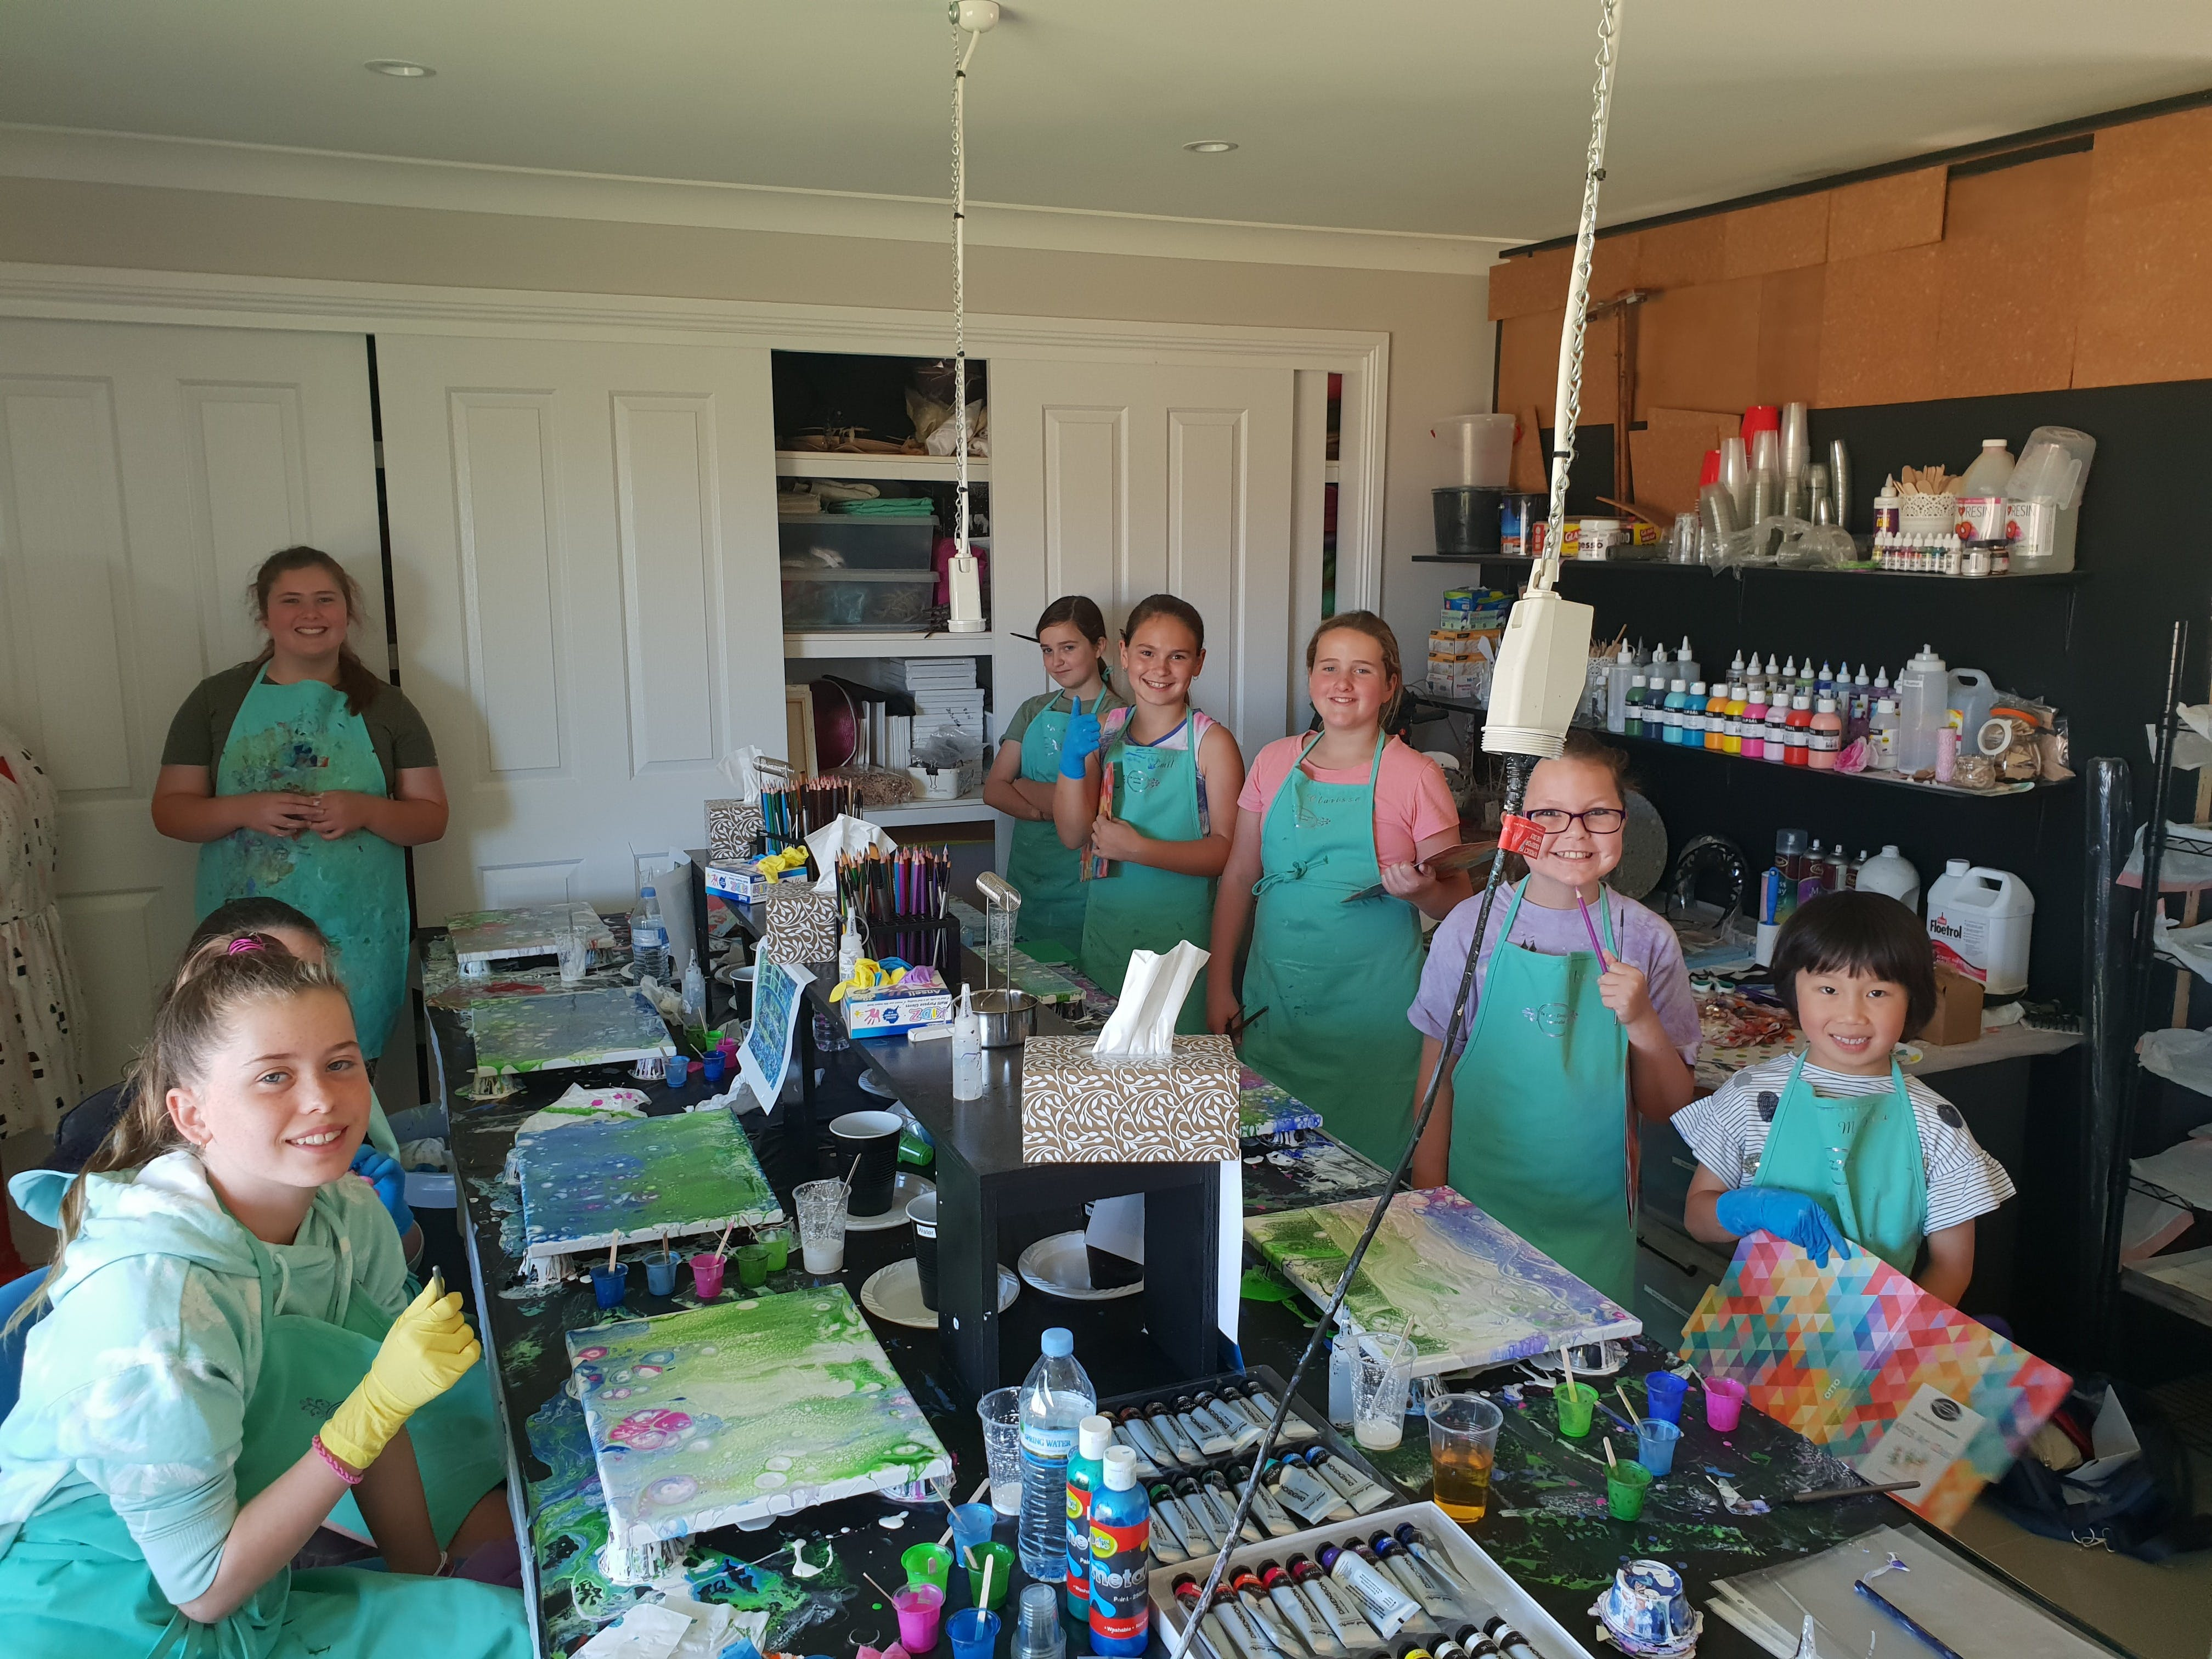 School holidays - Kids art class - Painting - Sunshine Coast Tourism